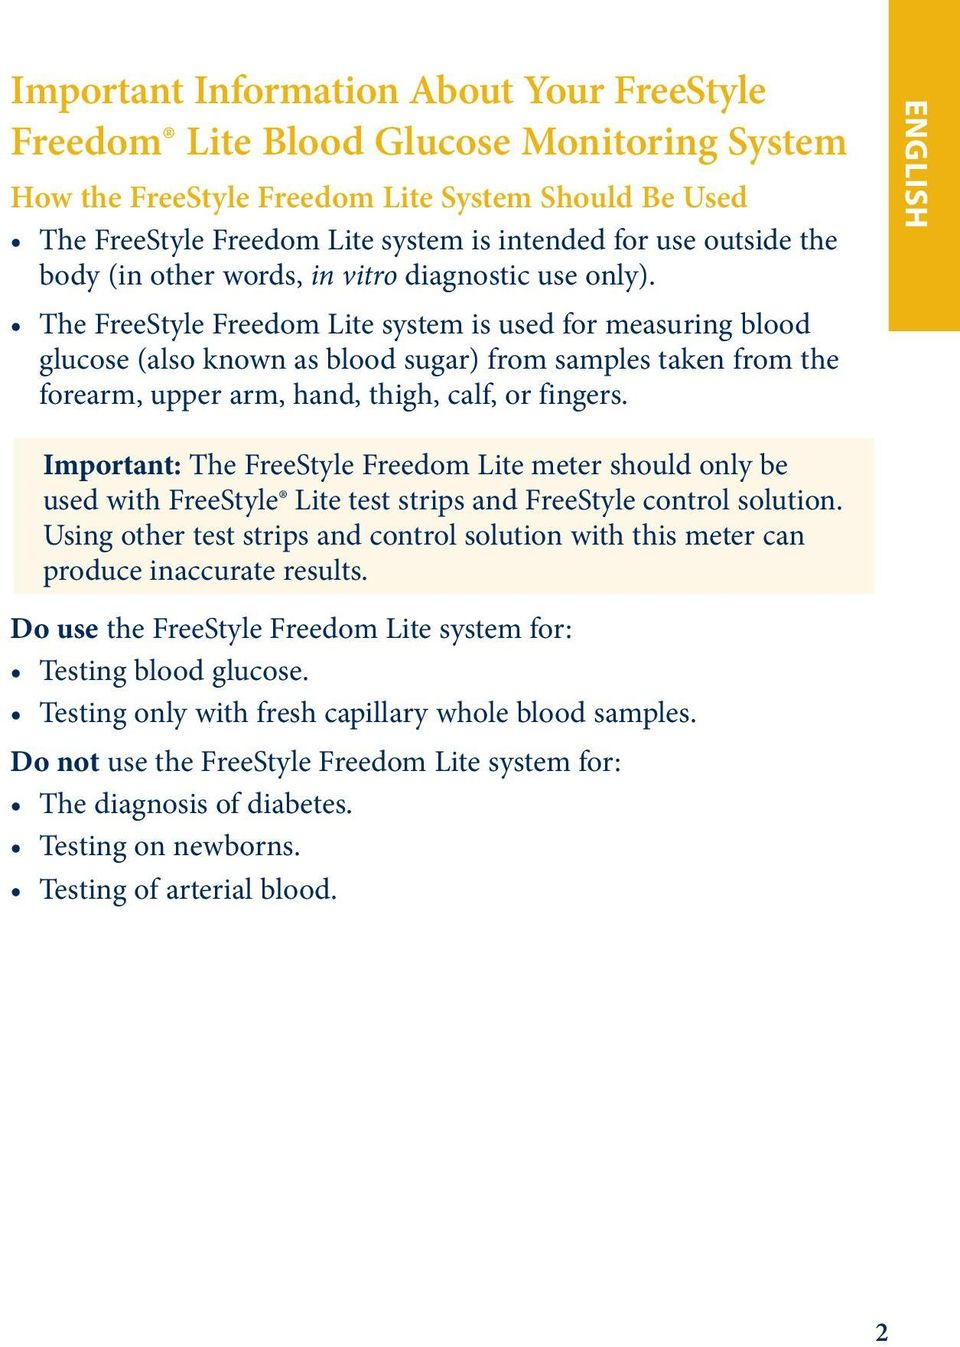 The FreeStyle Freedom Lite system is used for measuring blood glucose (also known as blood sugar) from samples taken from the forearm, upper arm, hand, thigh, calf, or fingers.